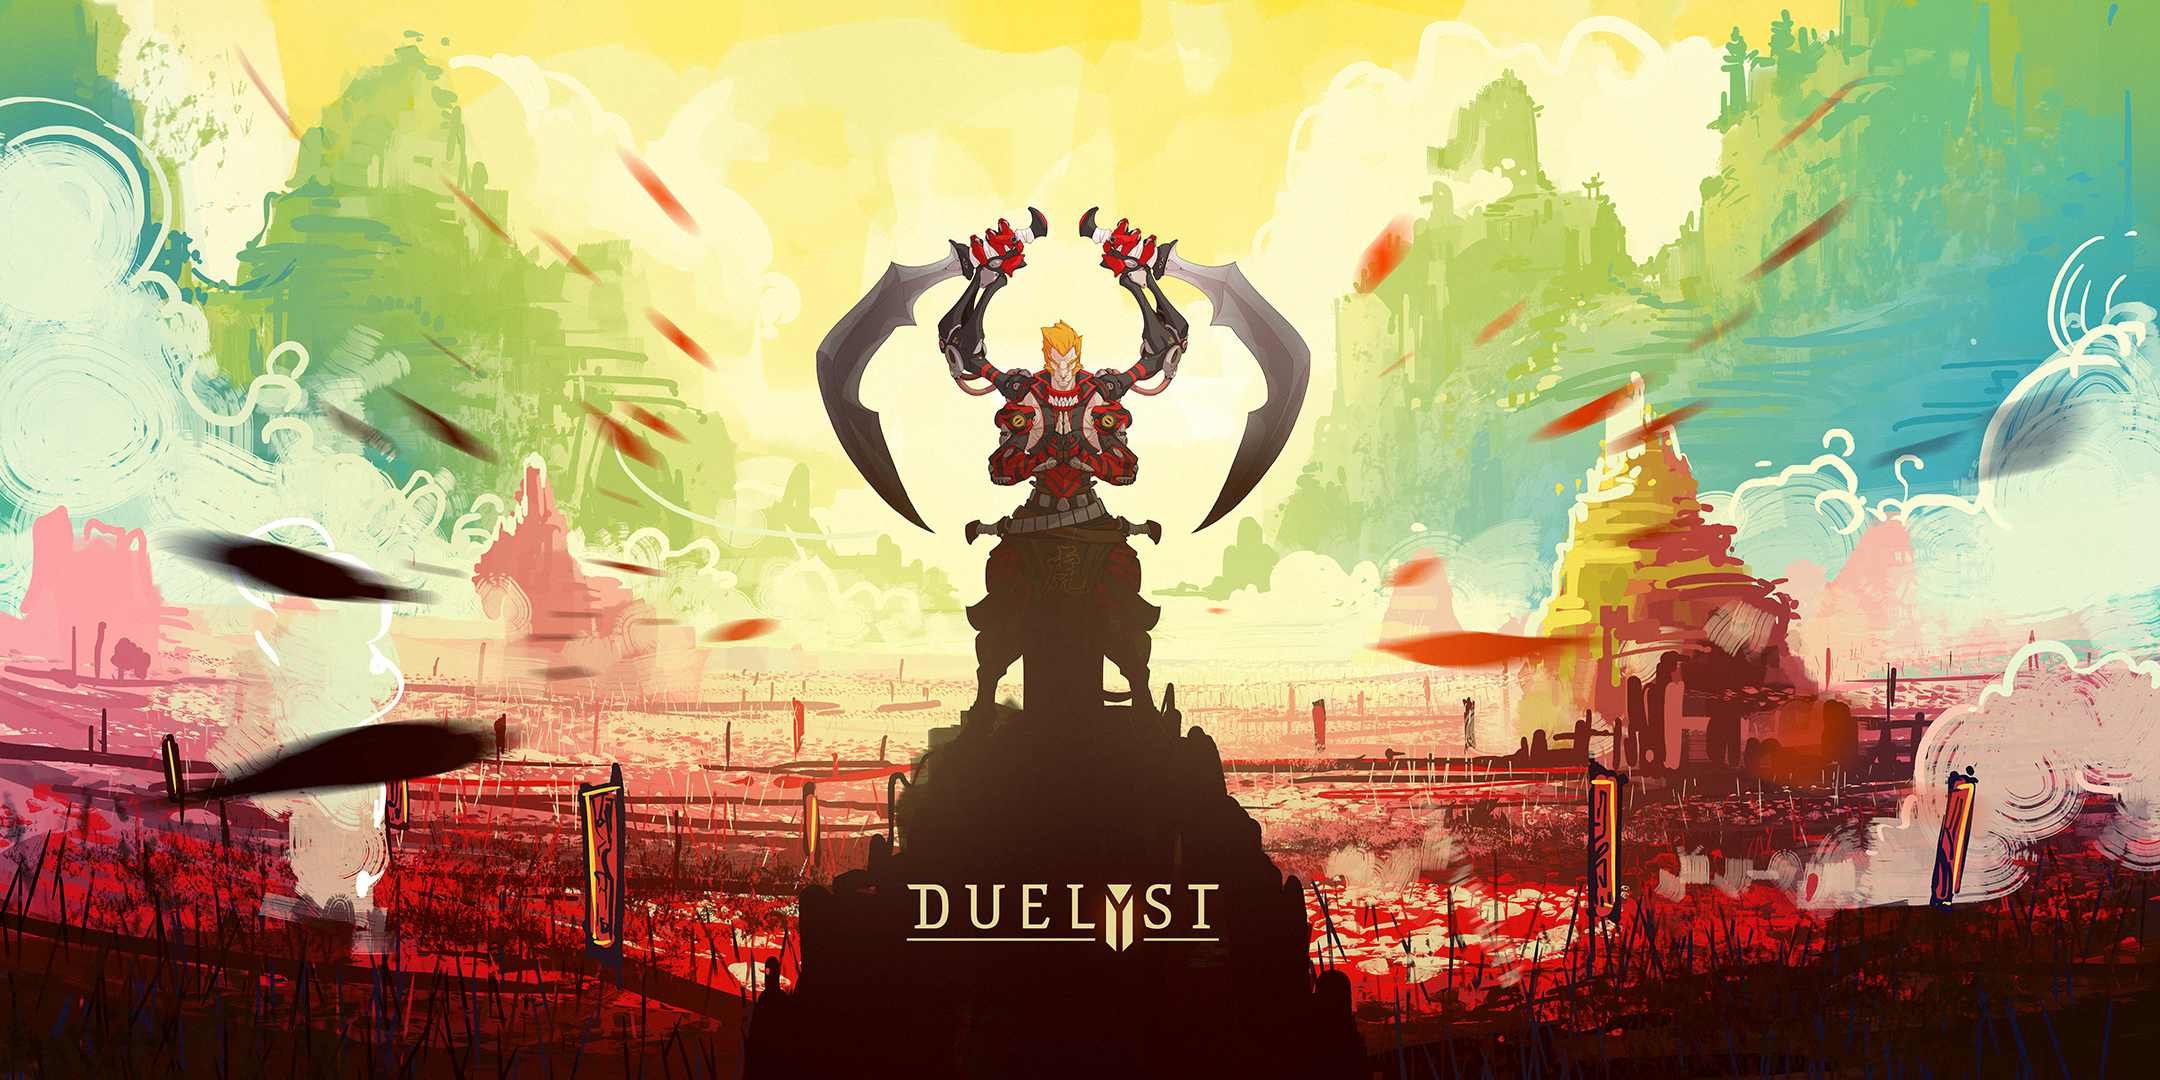 duelyst wallpapers